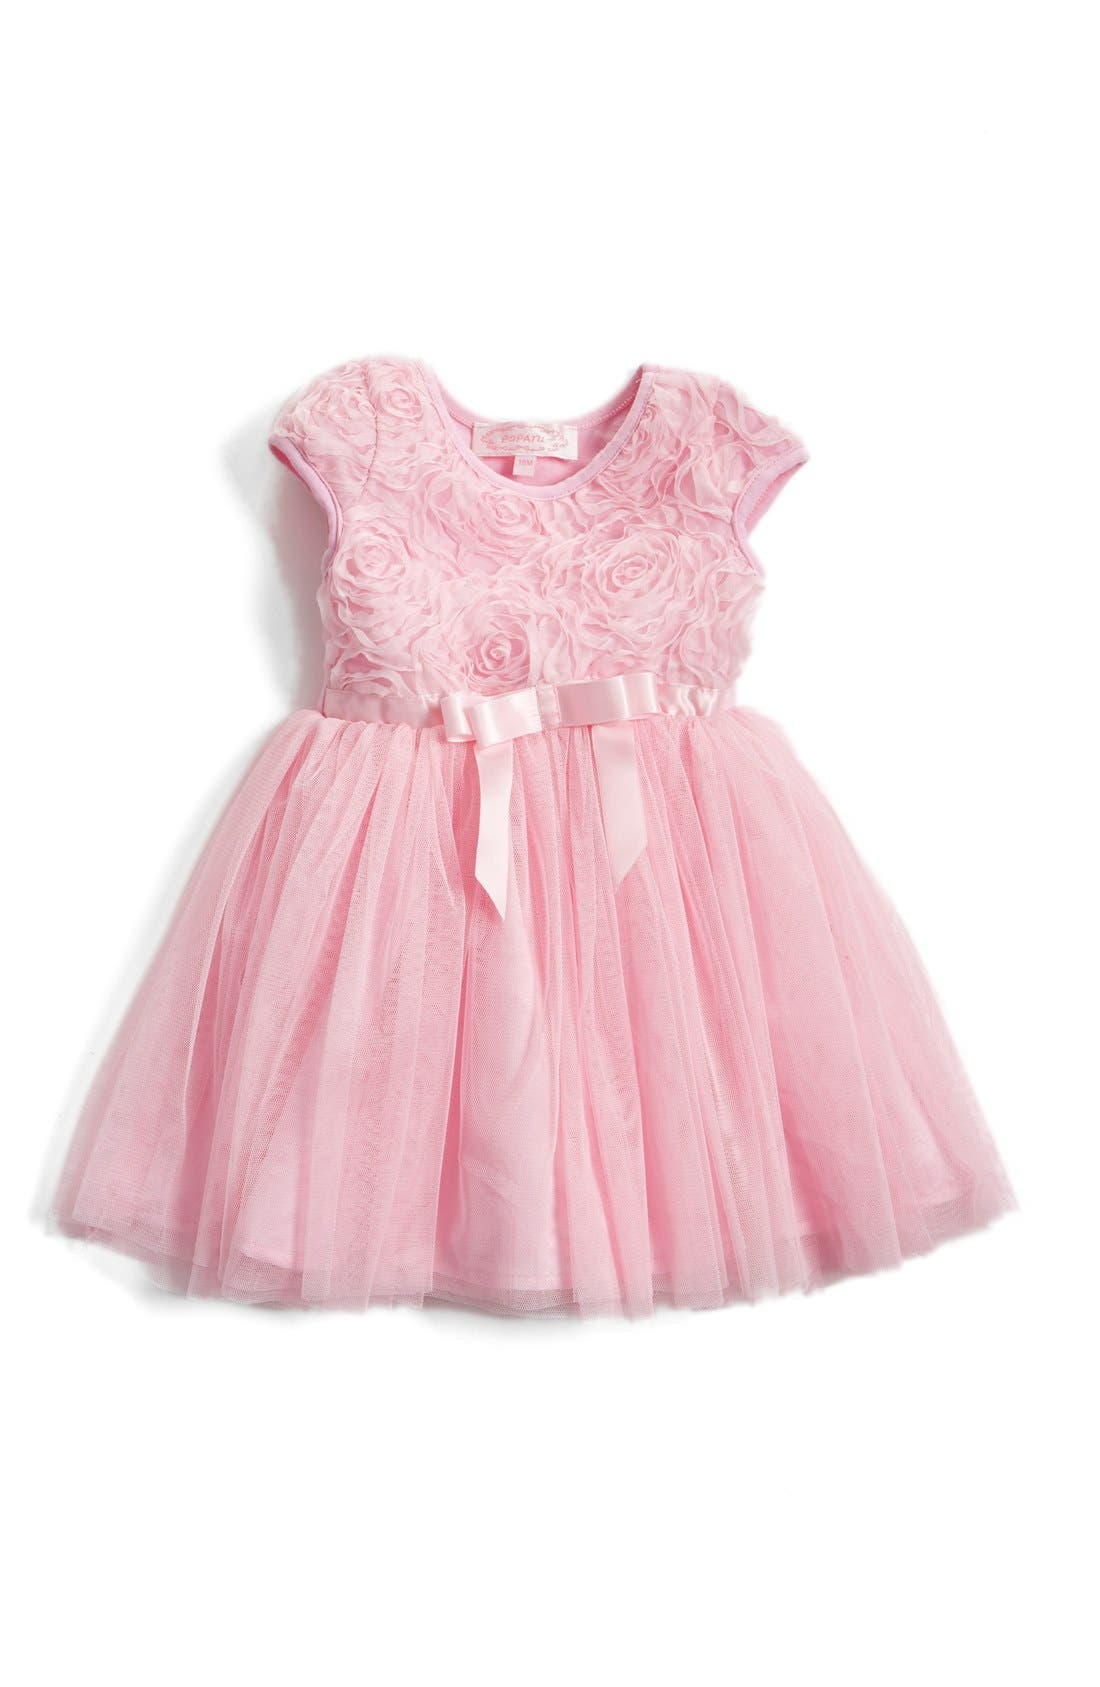 Short Sleeve Tulle Dress,                             Main thumbnail 1, color,                             PINK